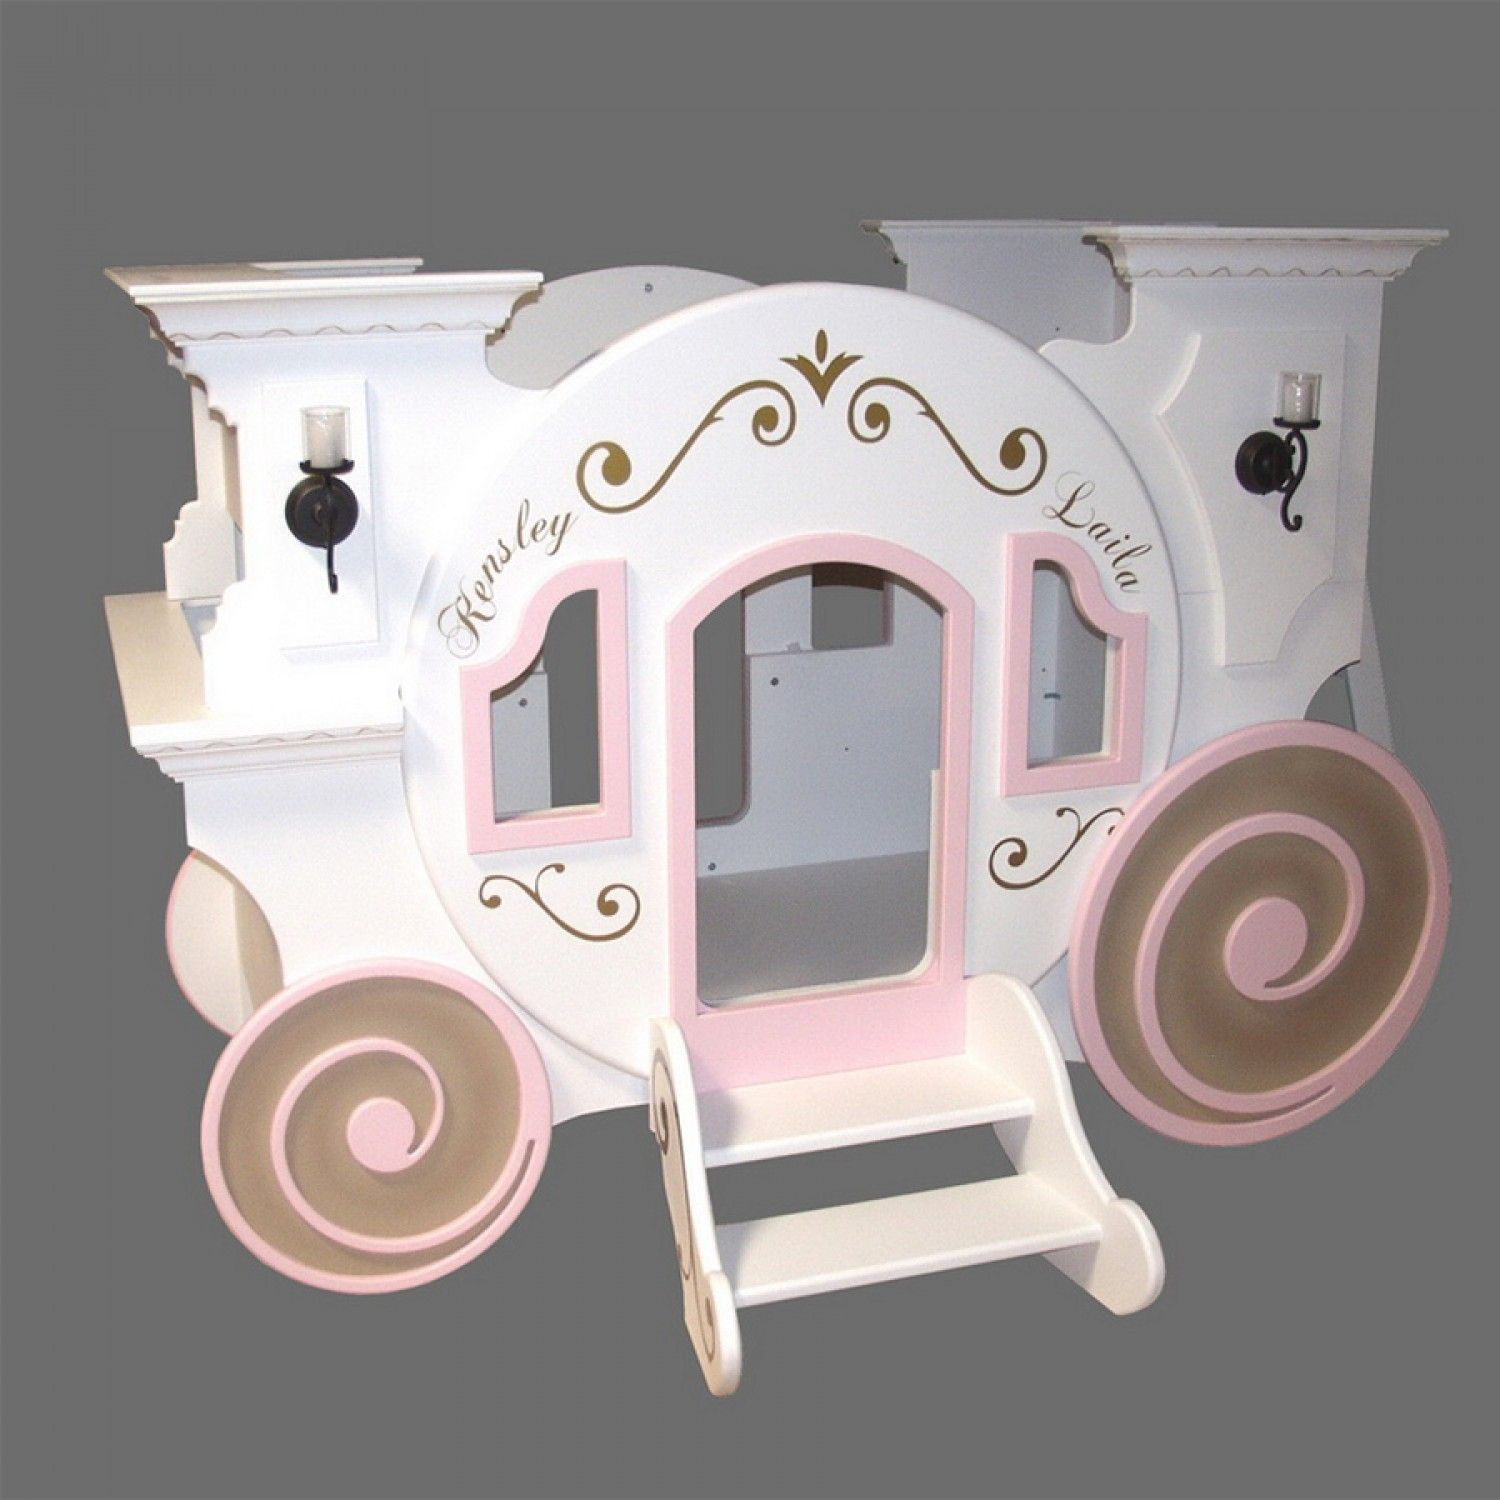 Kids loft bed with slide plans - Cinderella Princess Carriage Bunk Bed With Loft Plans Shuttle Train Cinderella Plans Bed Plans